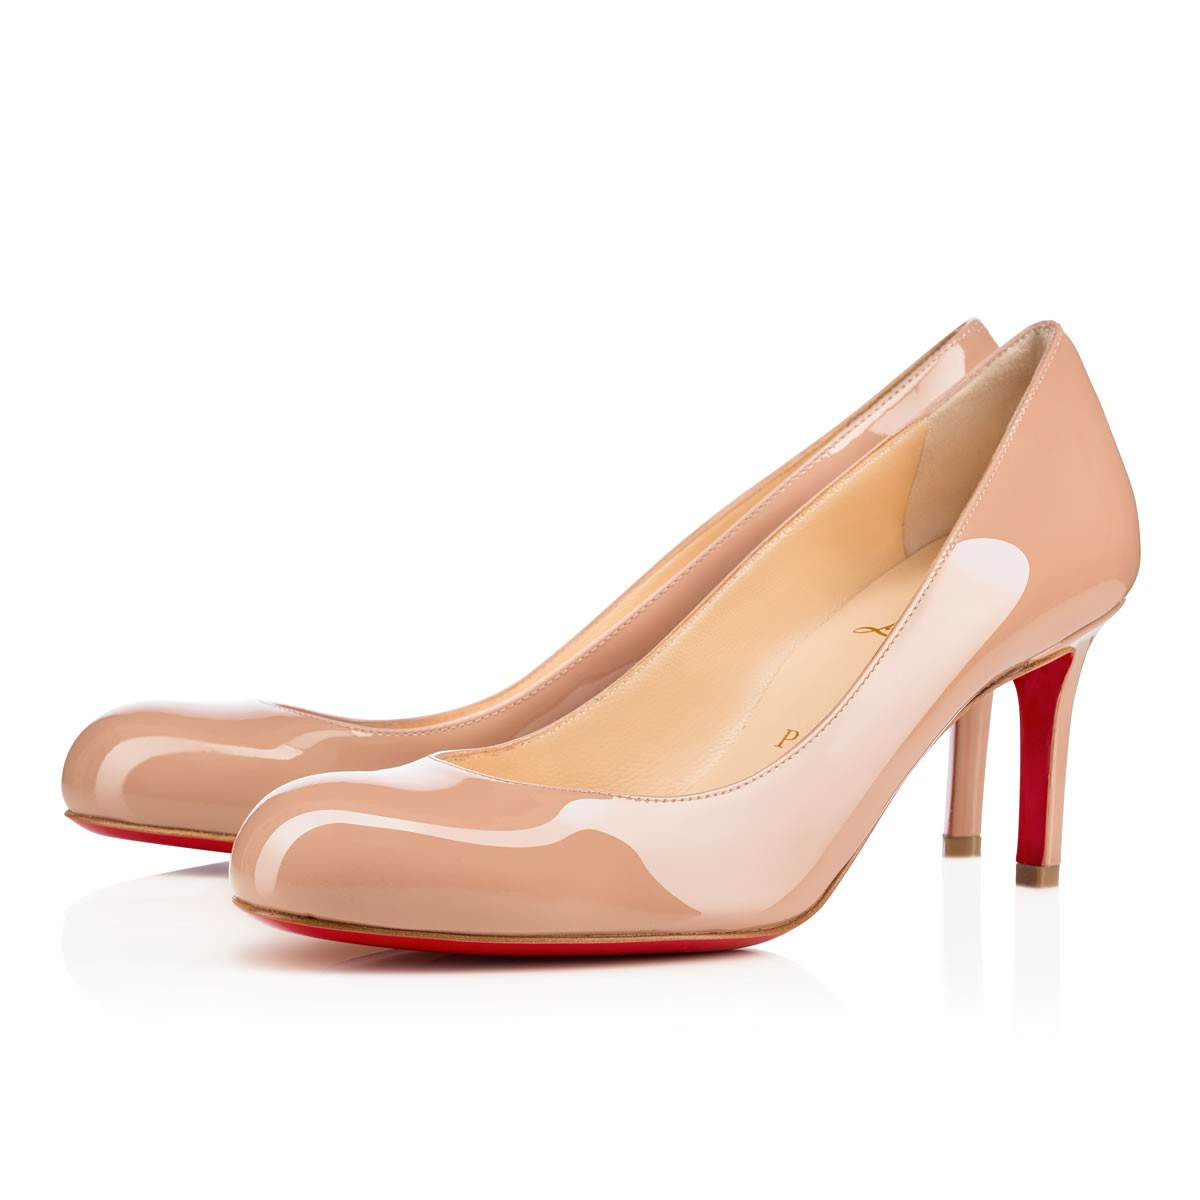 f4630da53fef SIMPLE PUMP 70 NUDE Patent Leather - Women Shoes - Christian Louboutin